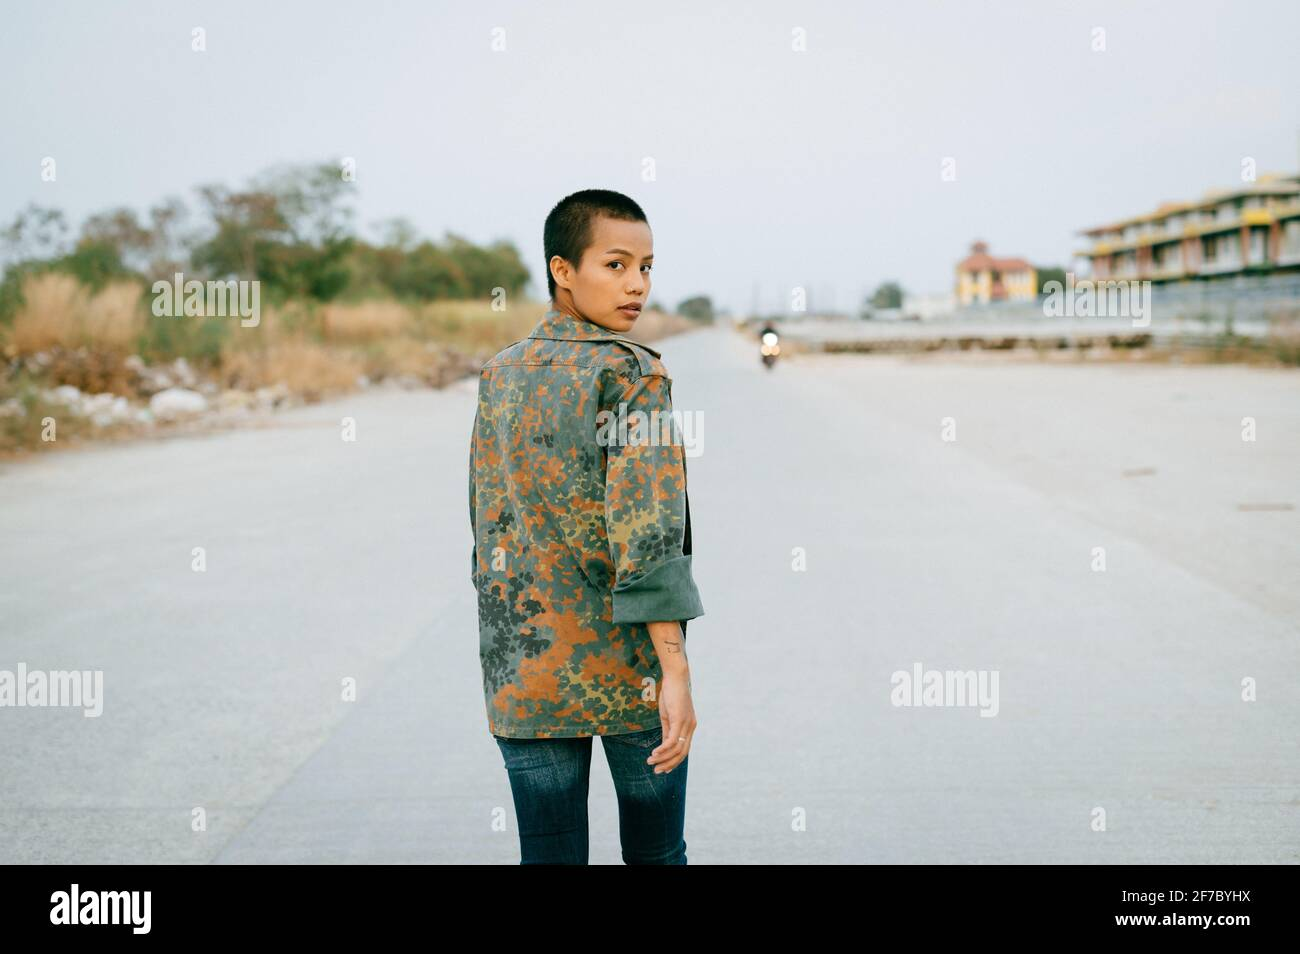 Young short hair Asian woman wearing a sports bra and an army jacket, walking away while looking at the camera over her shoulder. Stock Photo